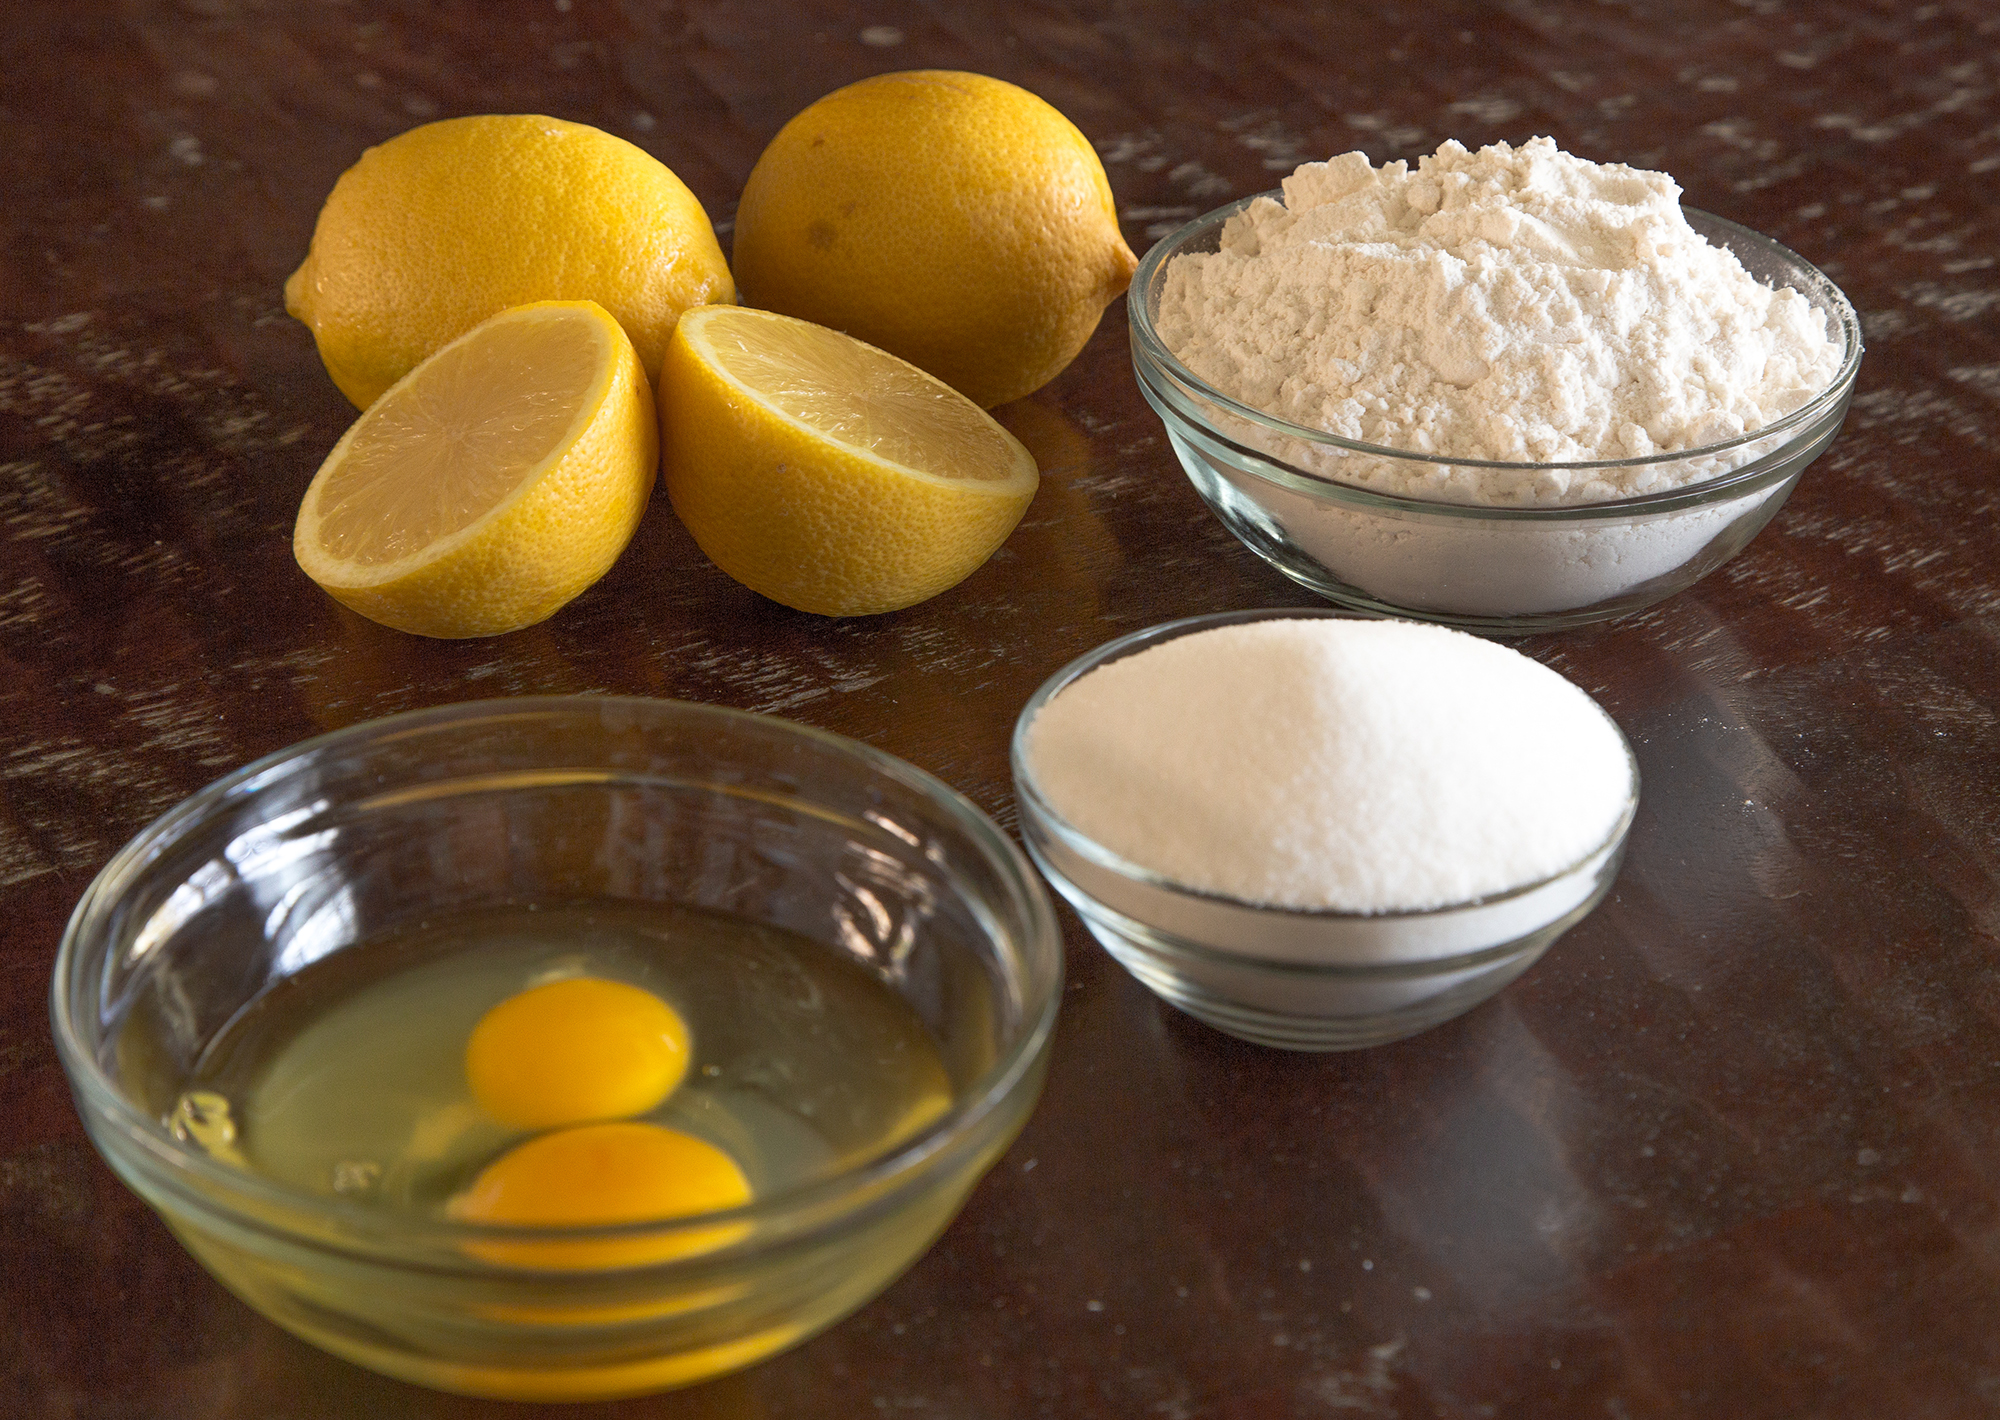 Lemon Cupcakes-1ingredietns.jpg